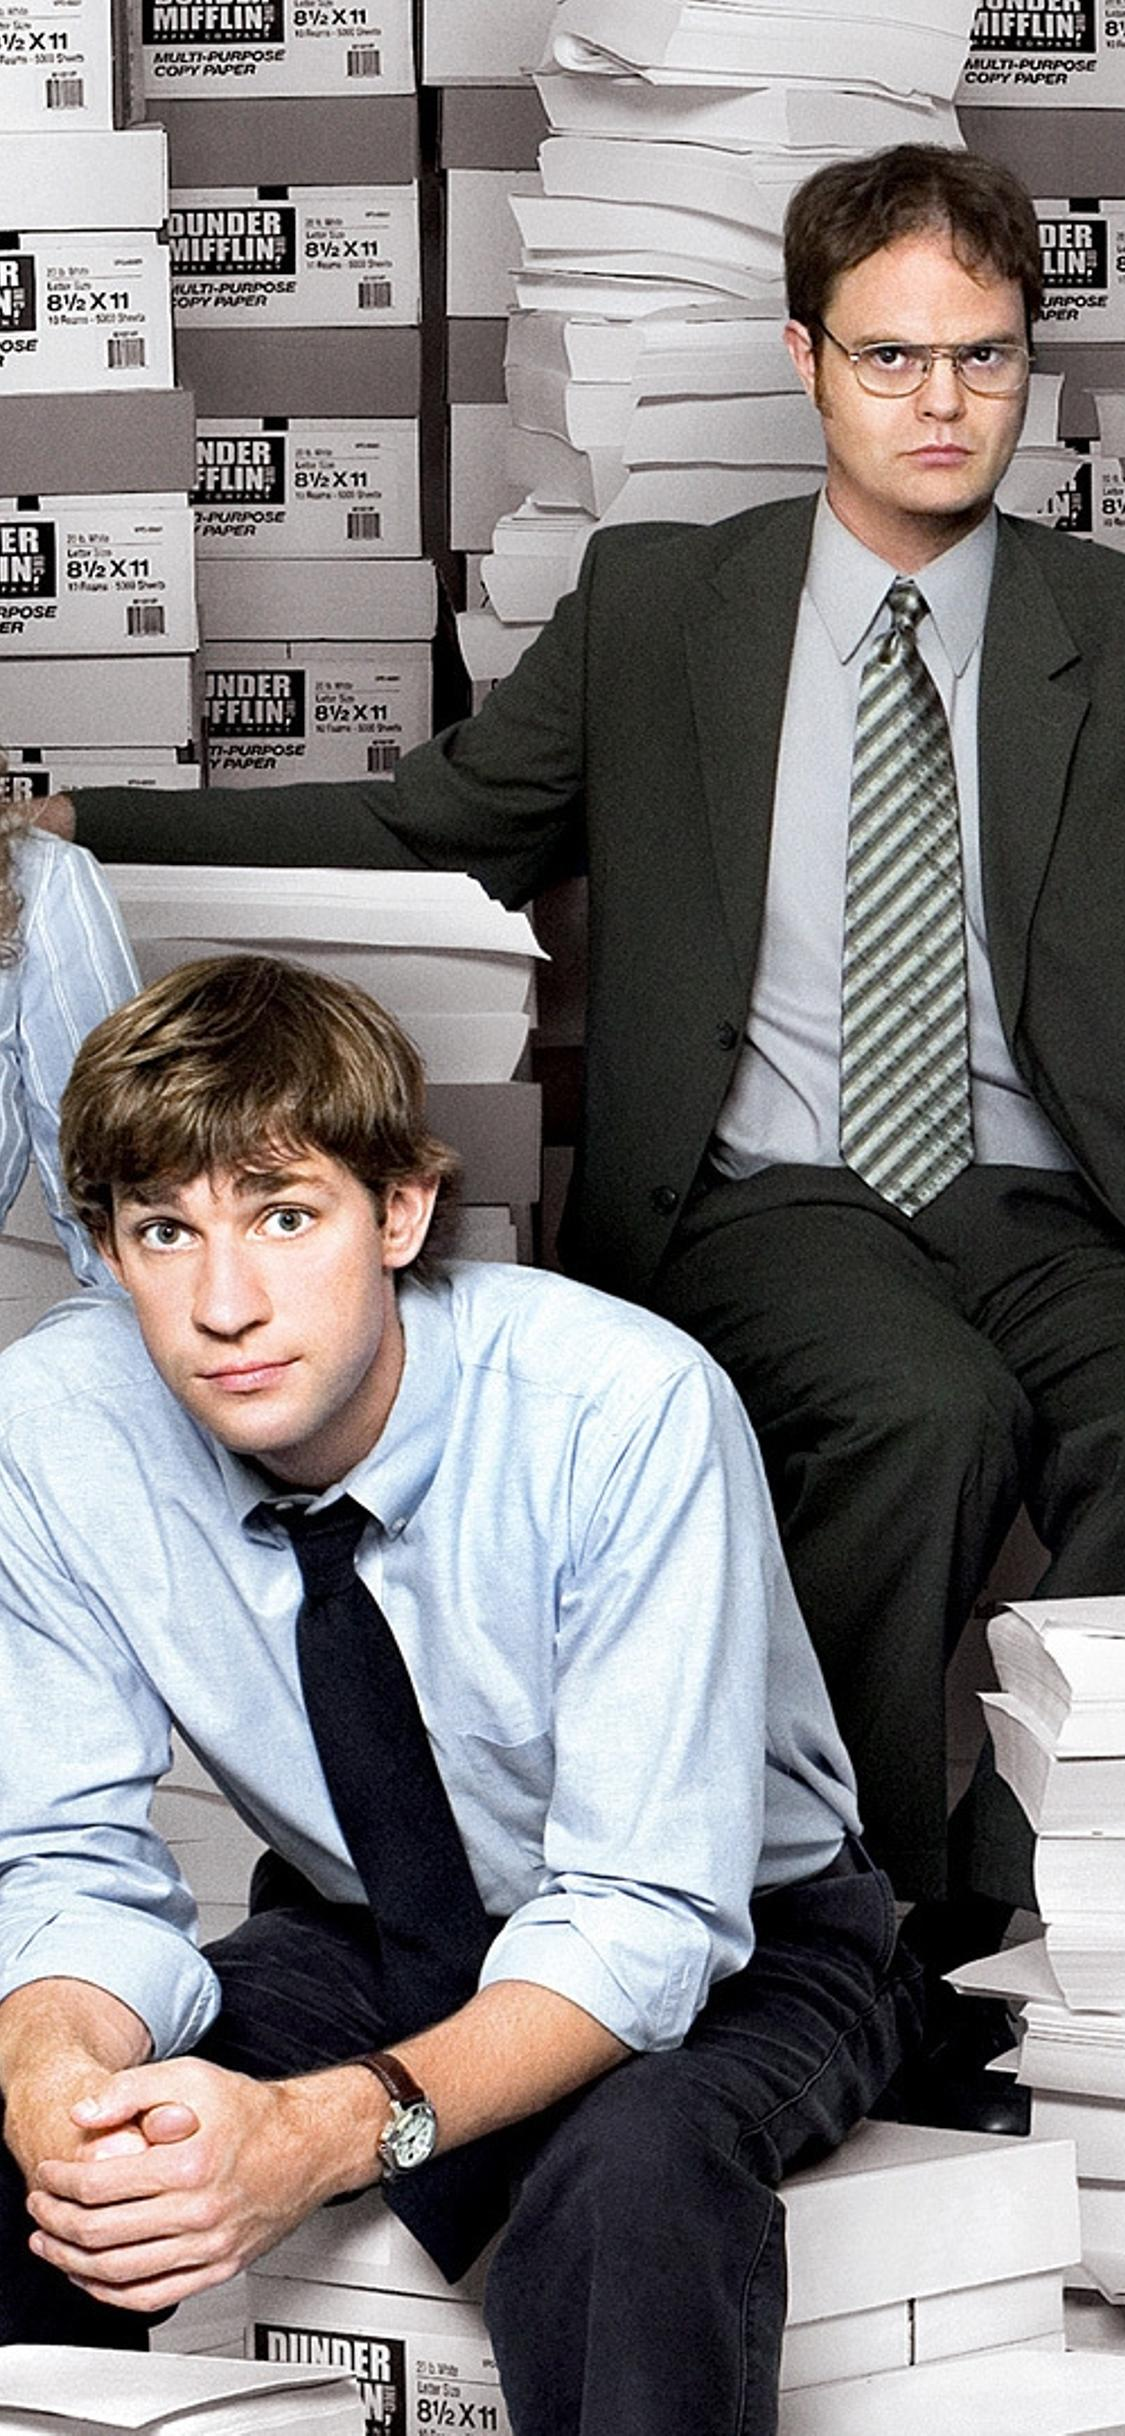 Wallpaper Of The Office Movie